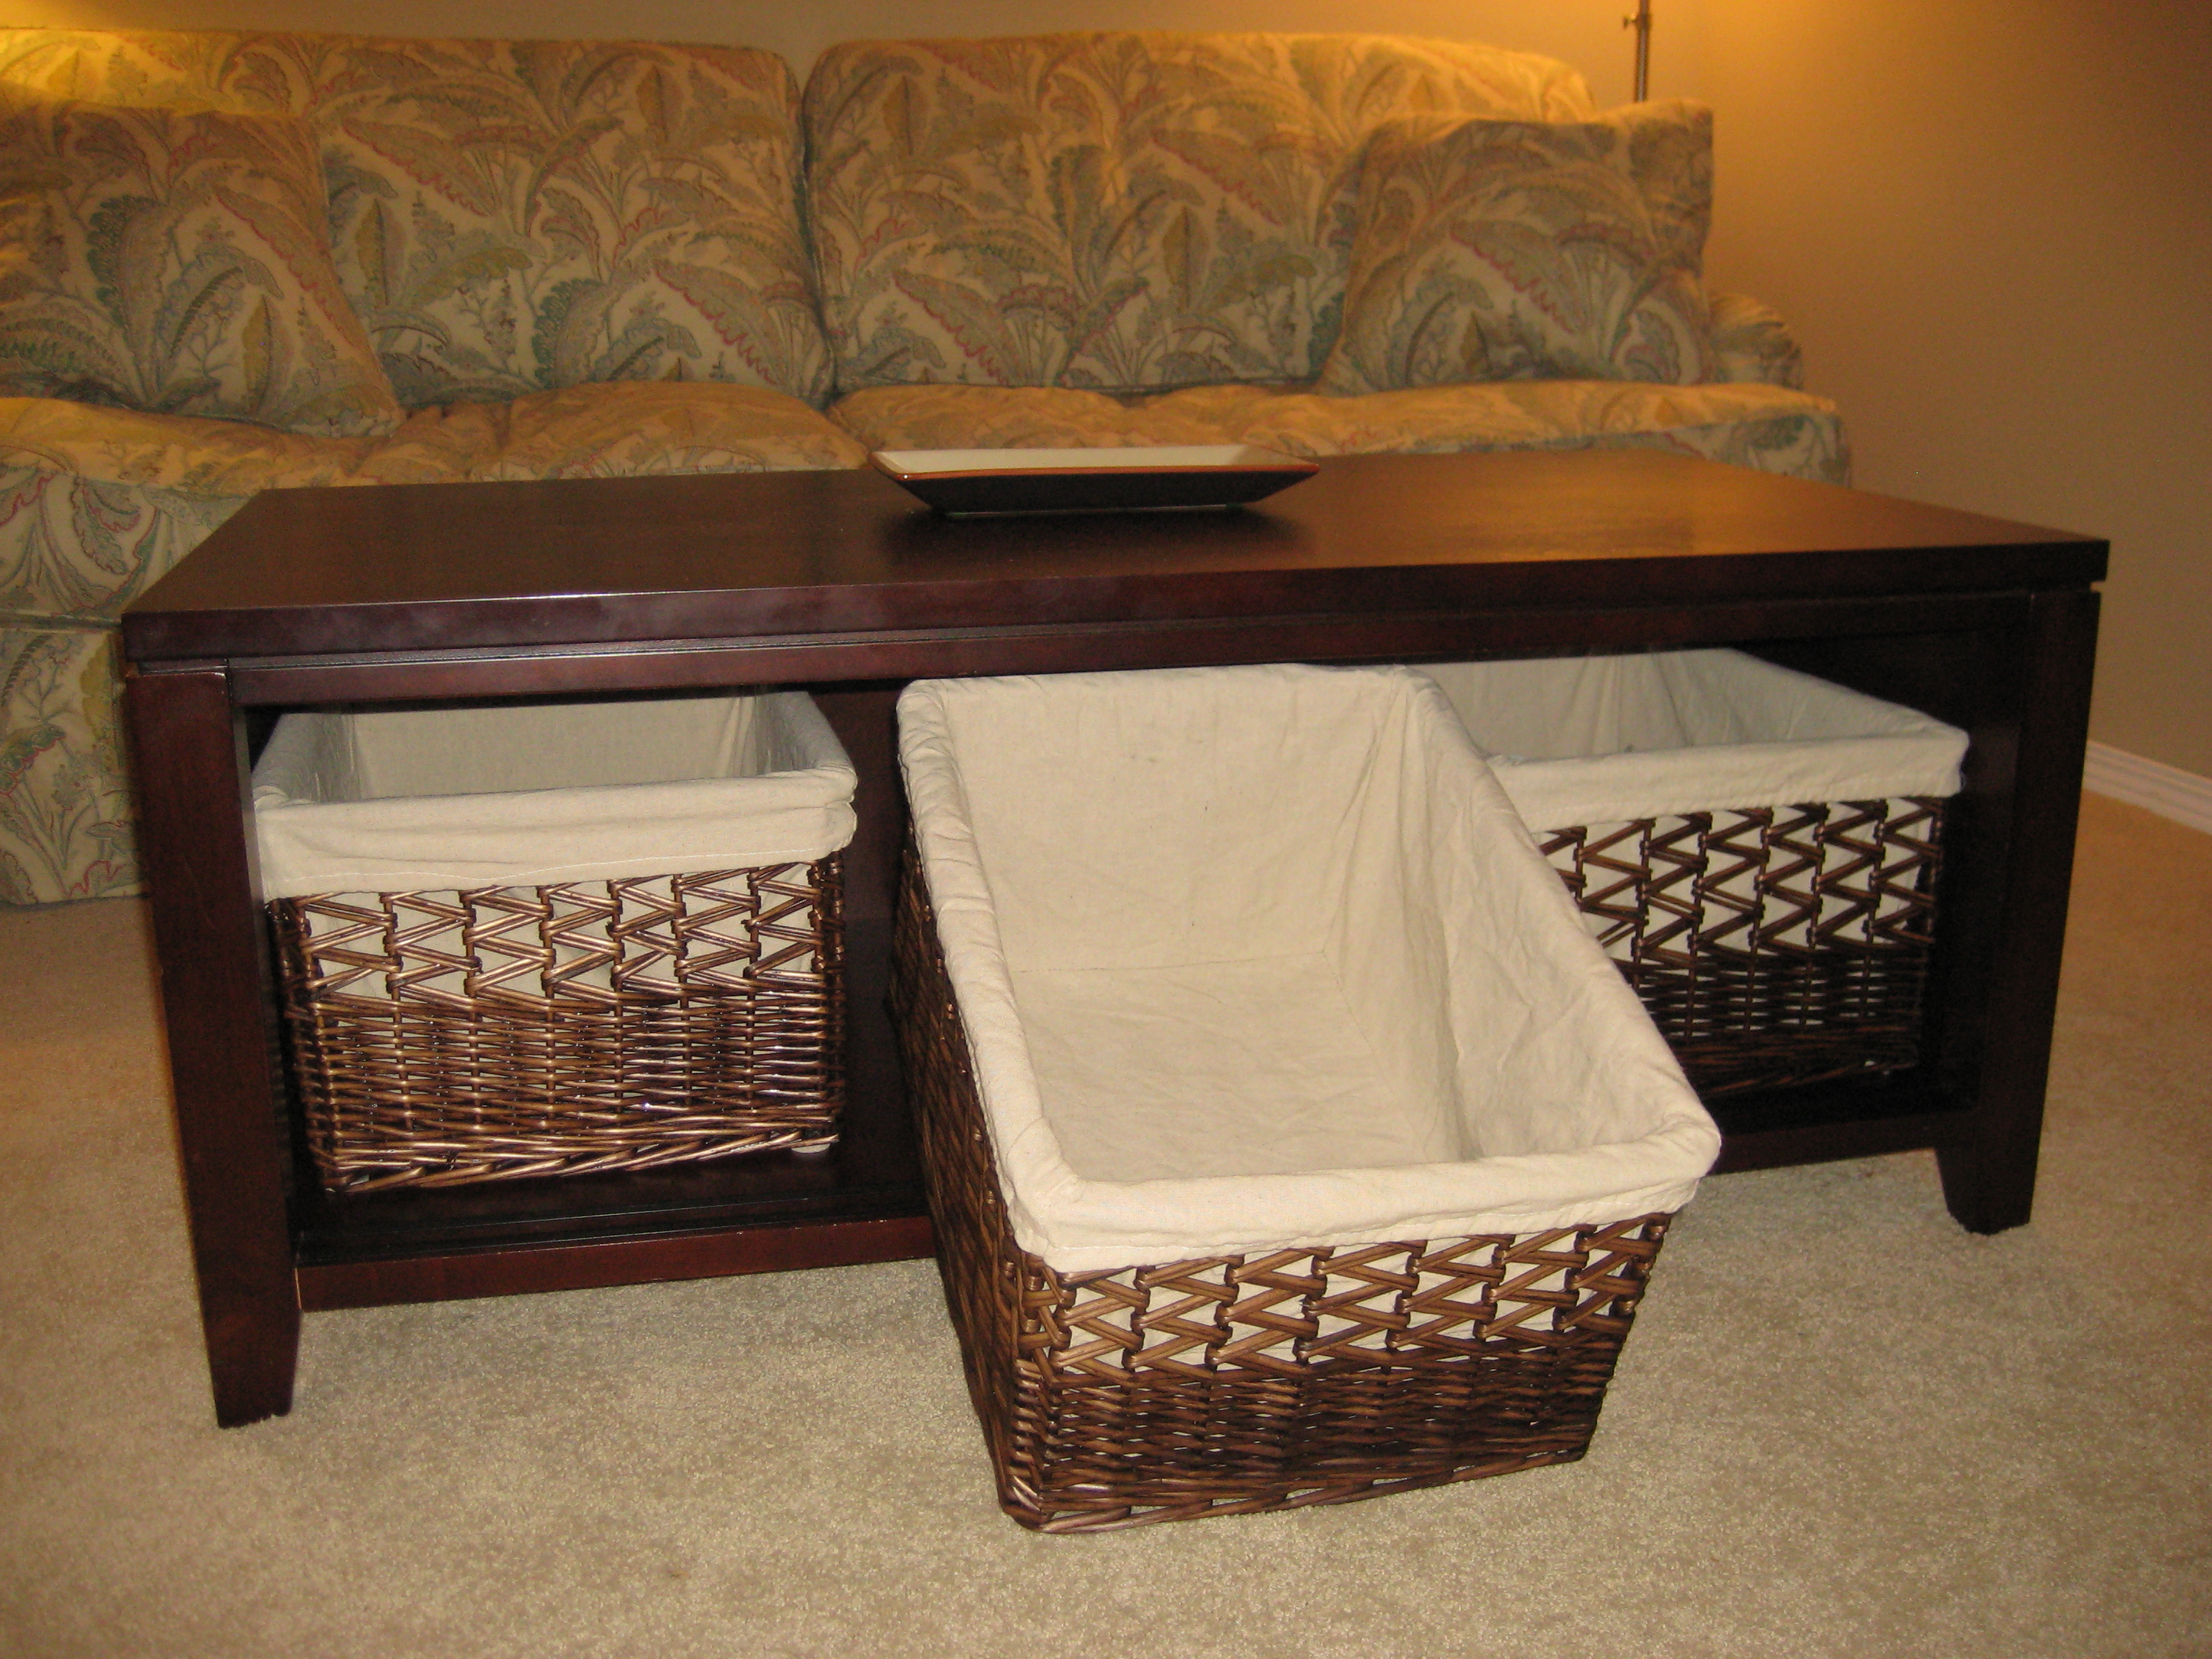 Most Recent Rustic Coffee Tables With Wicker Storage Baskets For Decorative Baskets For Coffee Tables – Rascalartsnyc (View 6 of 20)